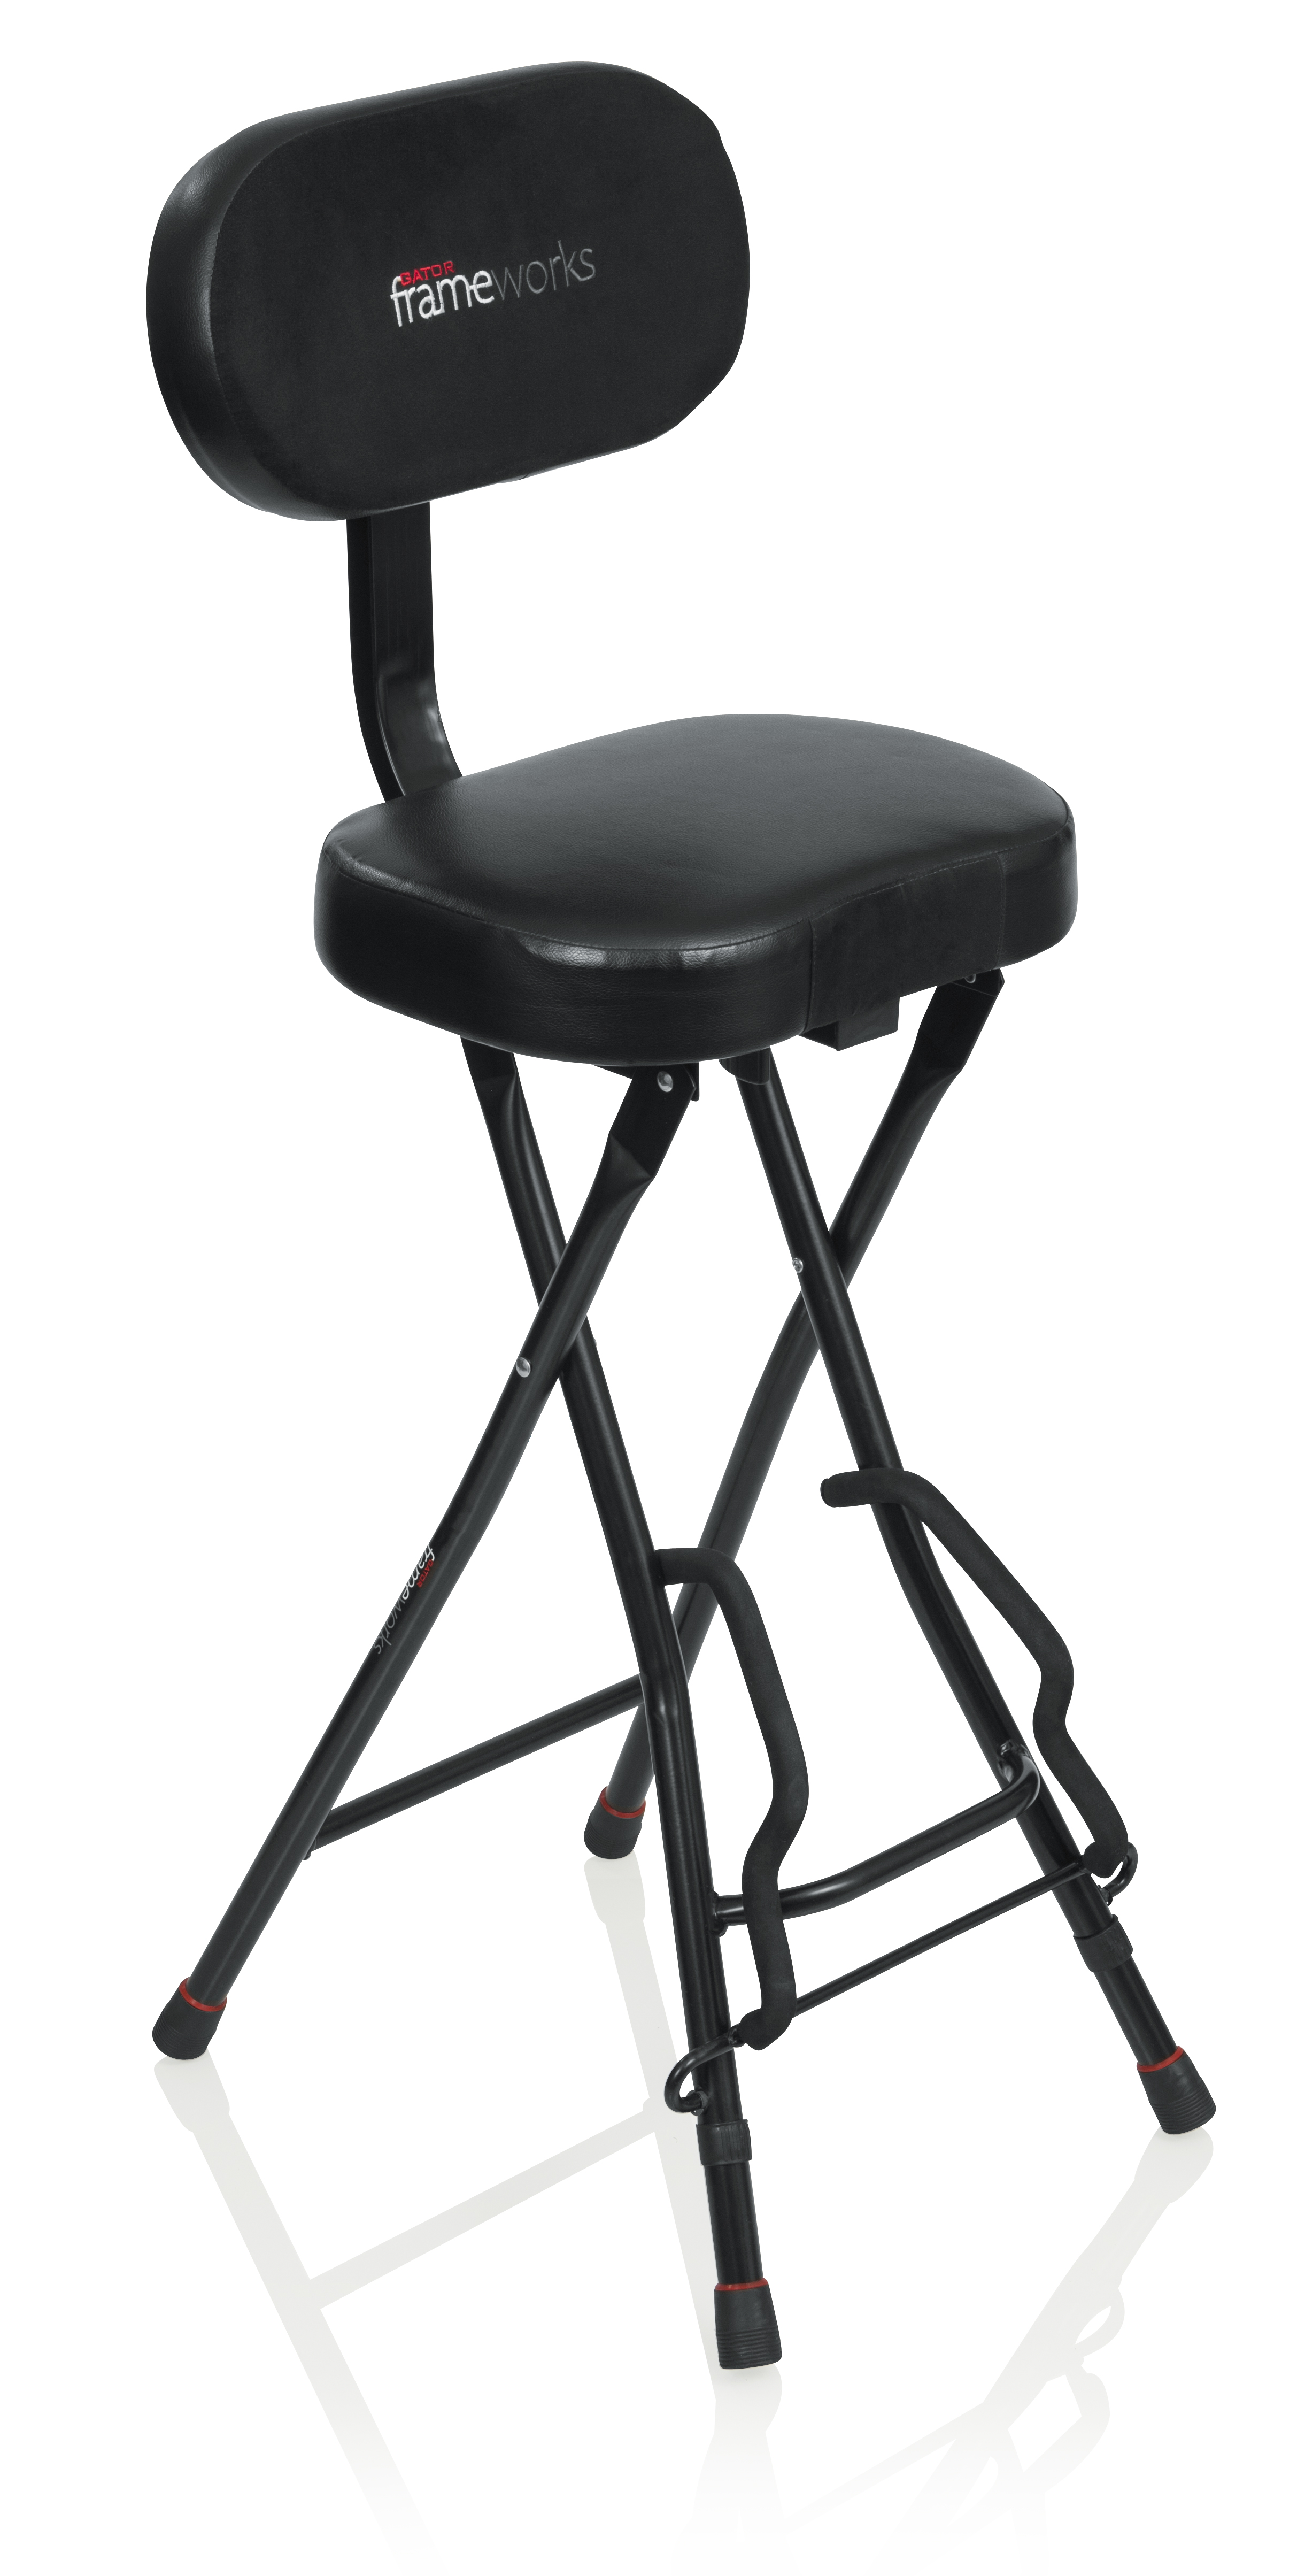 Phenomenal Frameworks Gfw Gtr Seat Guitar Seat Stand Onthecornerstone Fun Painted Chair Ideas Images Onthecornerstoneorg